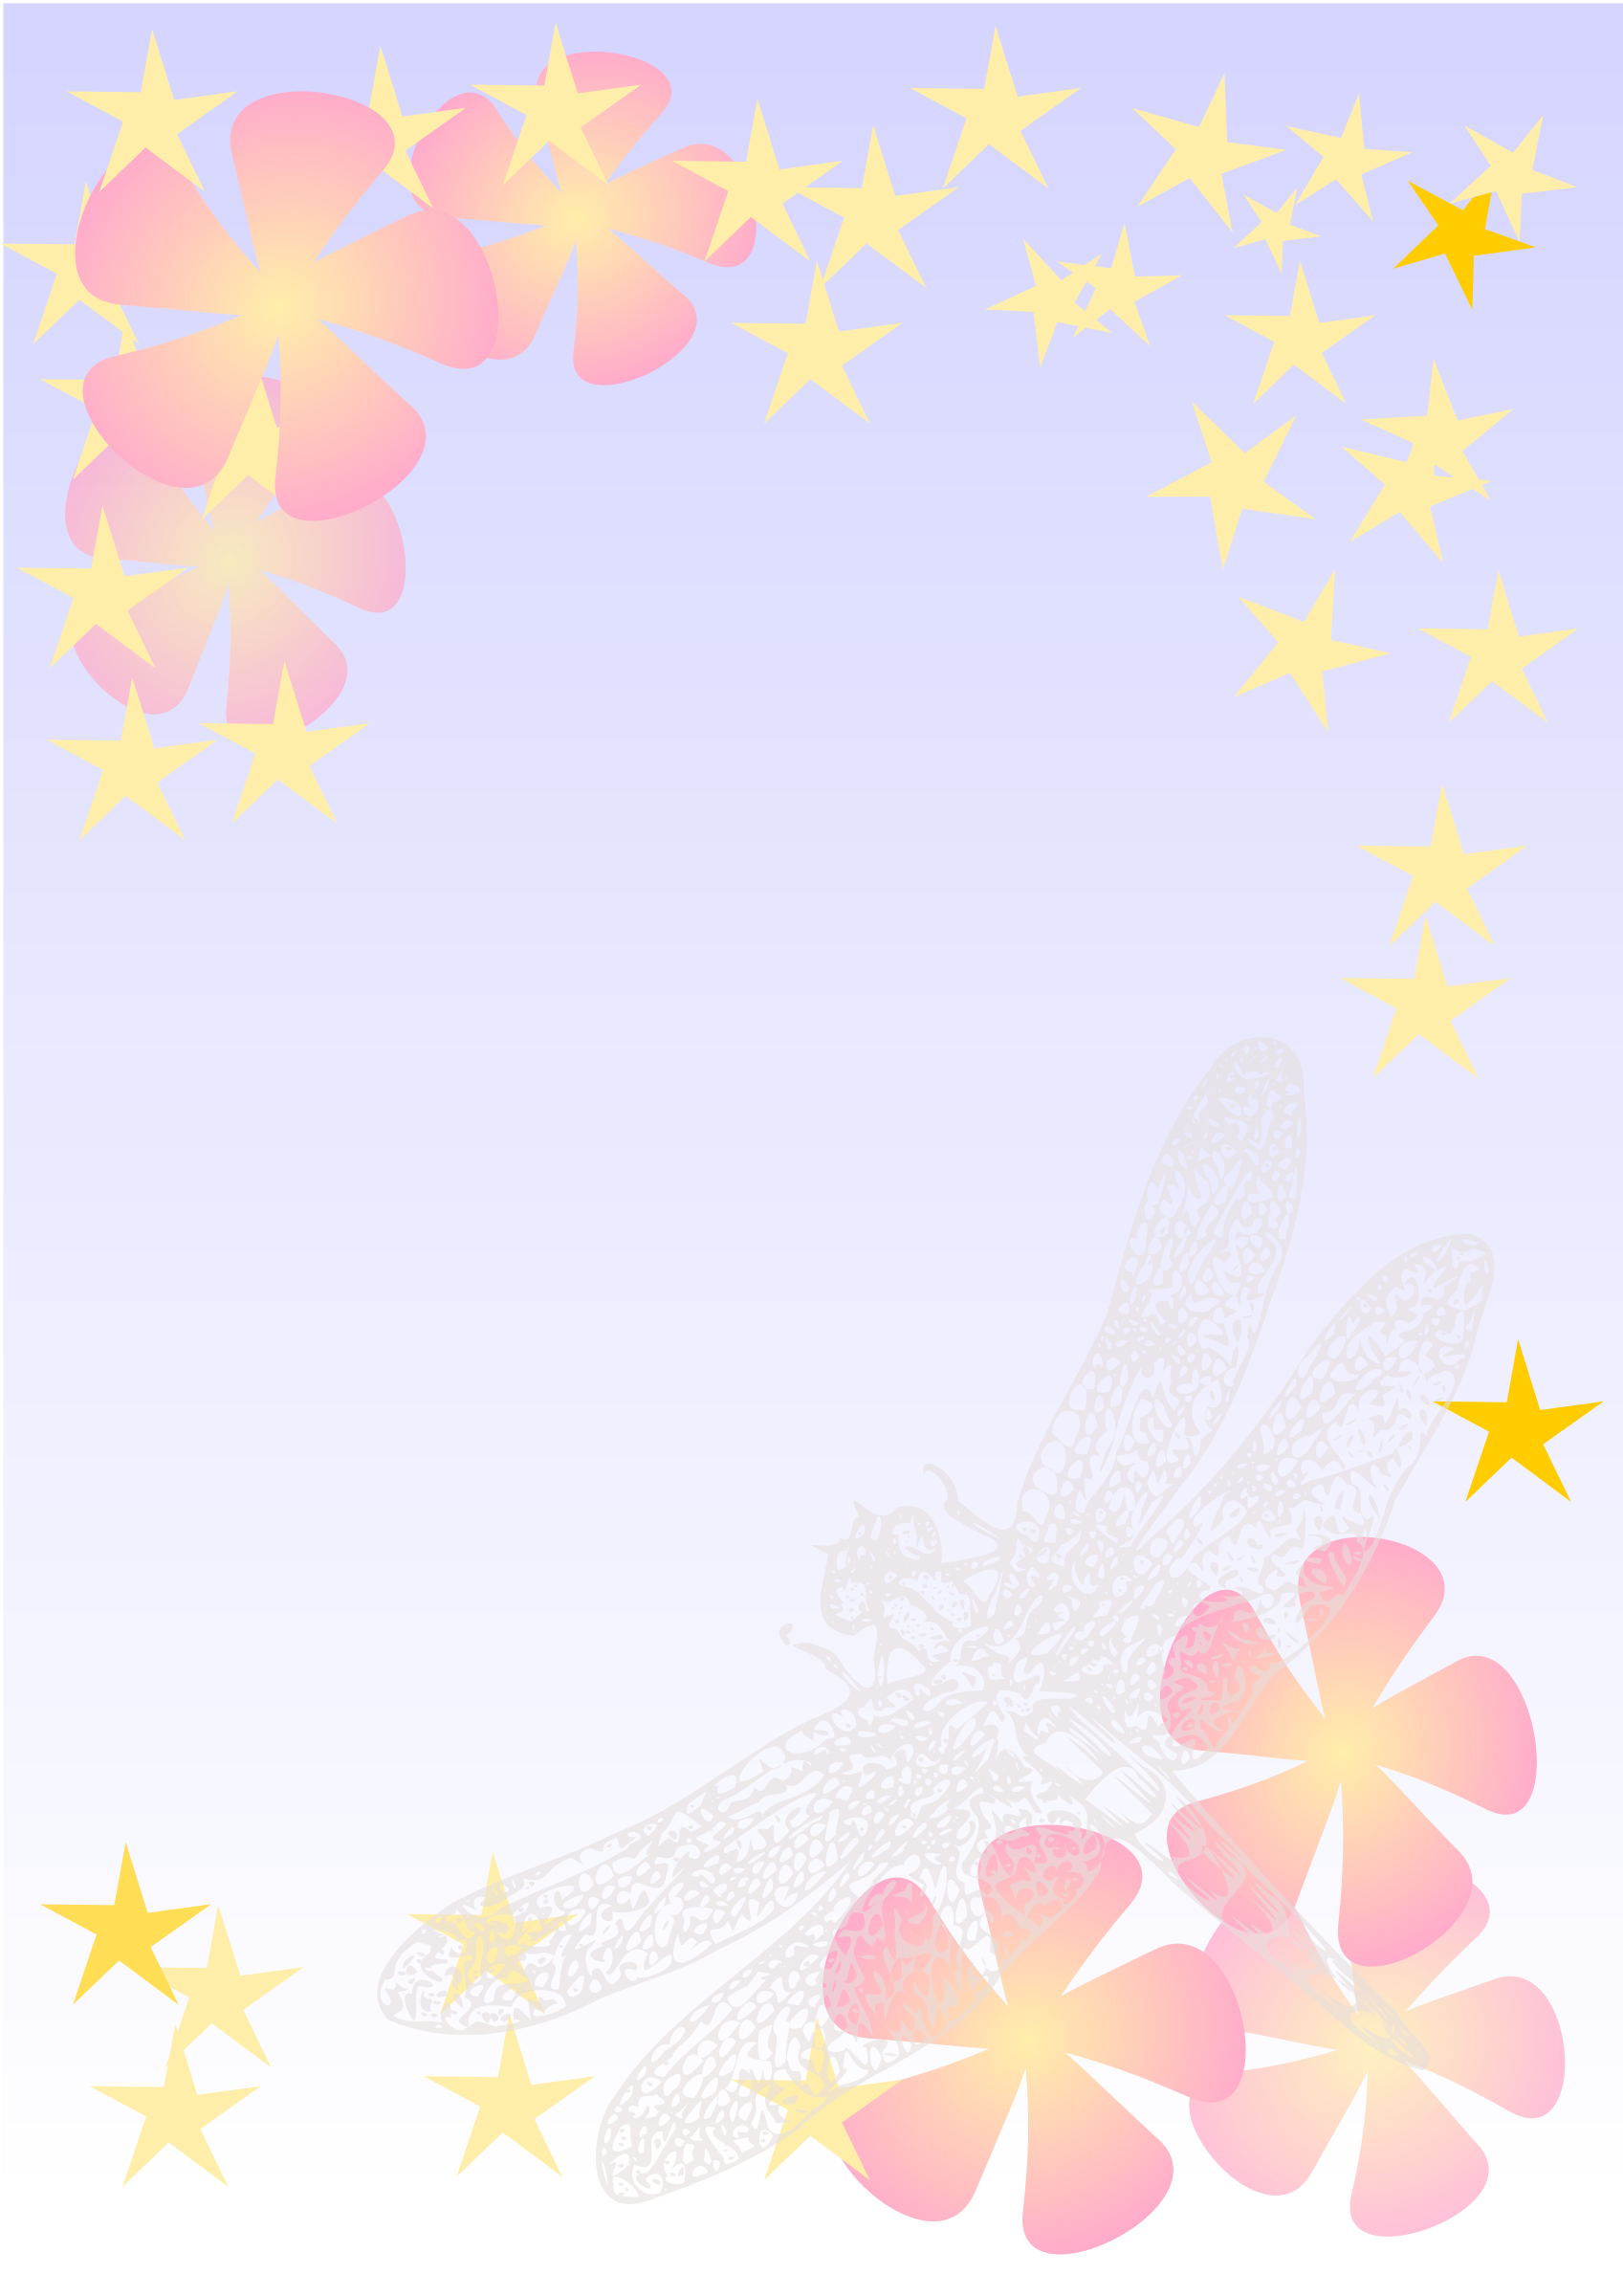 Dragonfly notepaper by kattekrab